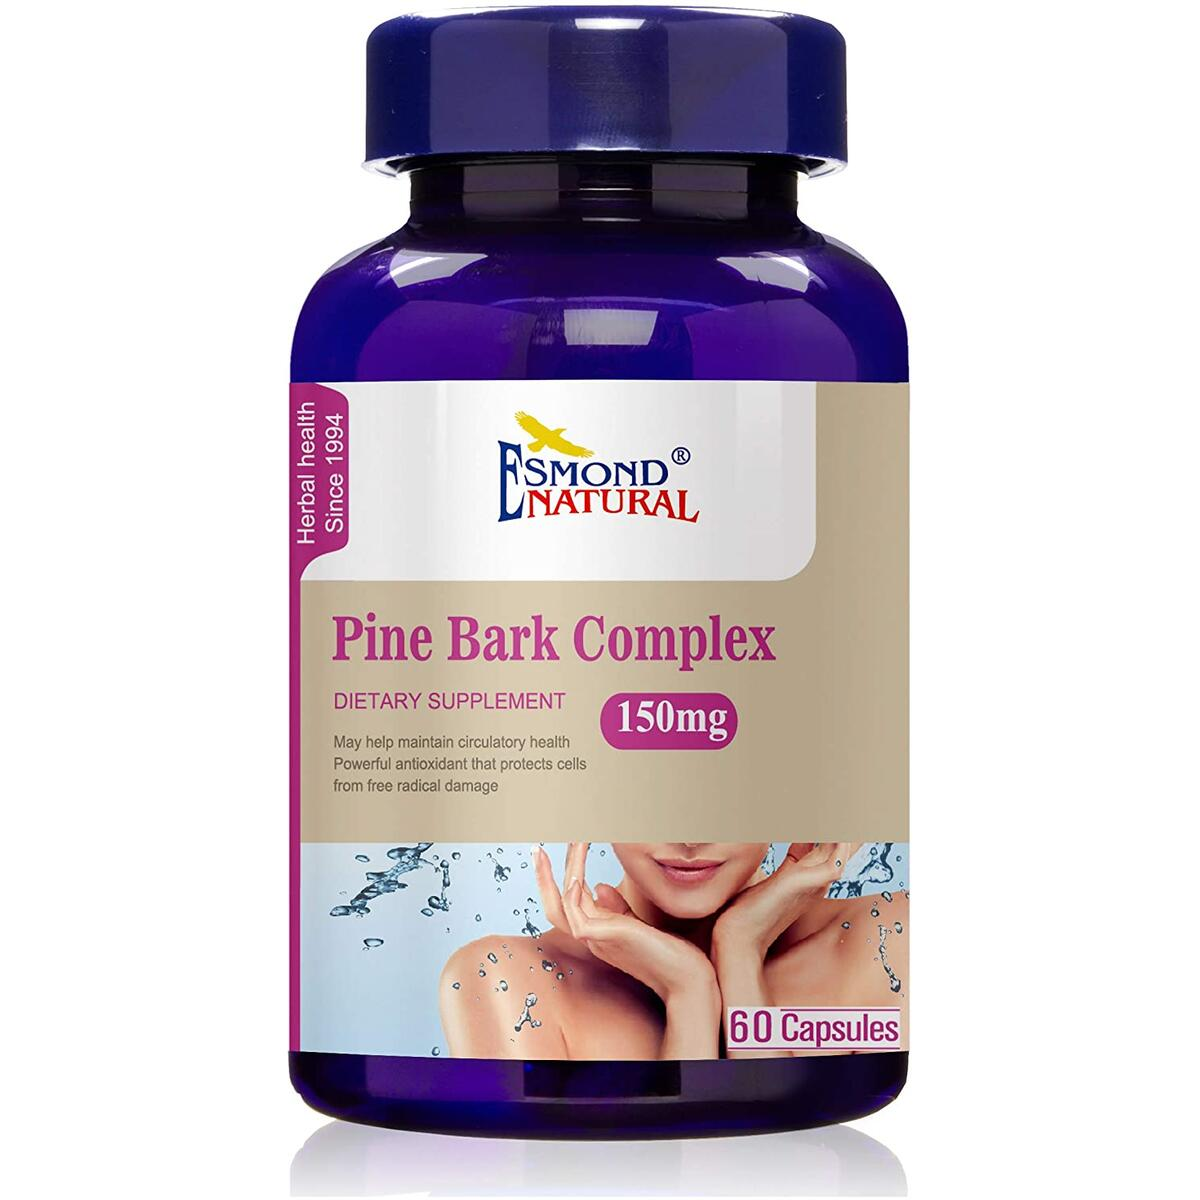 (5 Count, 25% Off) Esmond Natural: Pine Bark Complex (Antioxidants to Protect Cells from Free Radical Damage), GMP, Natural Product Assn Certified, Made in USA-150mg, 300 Capsules